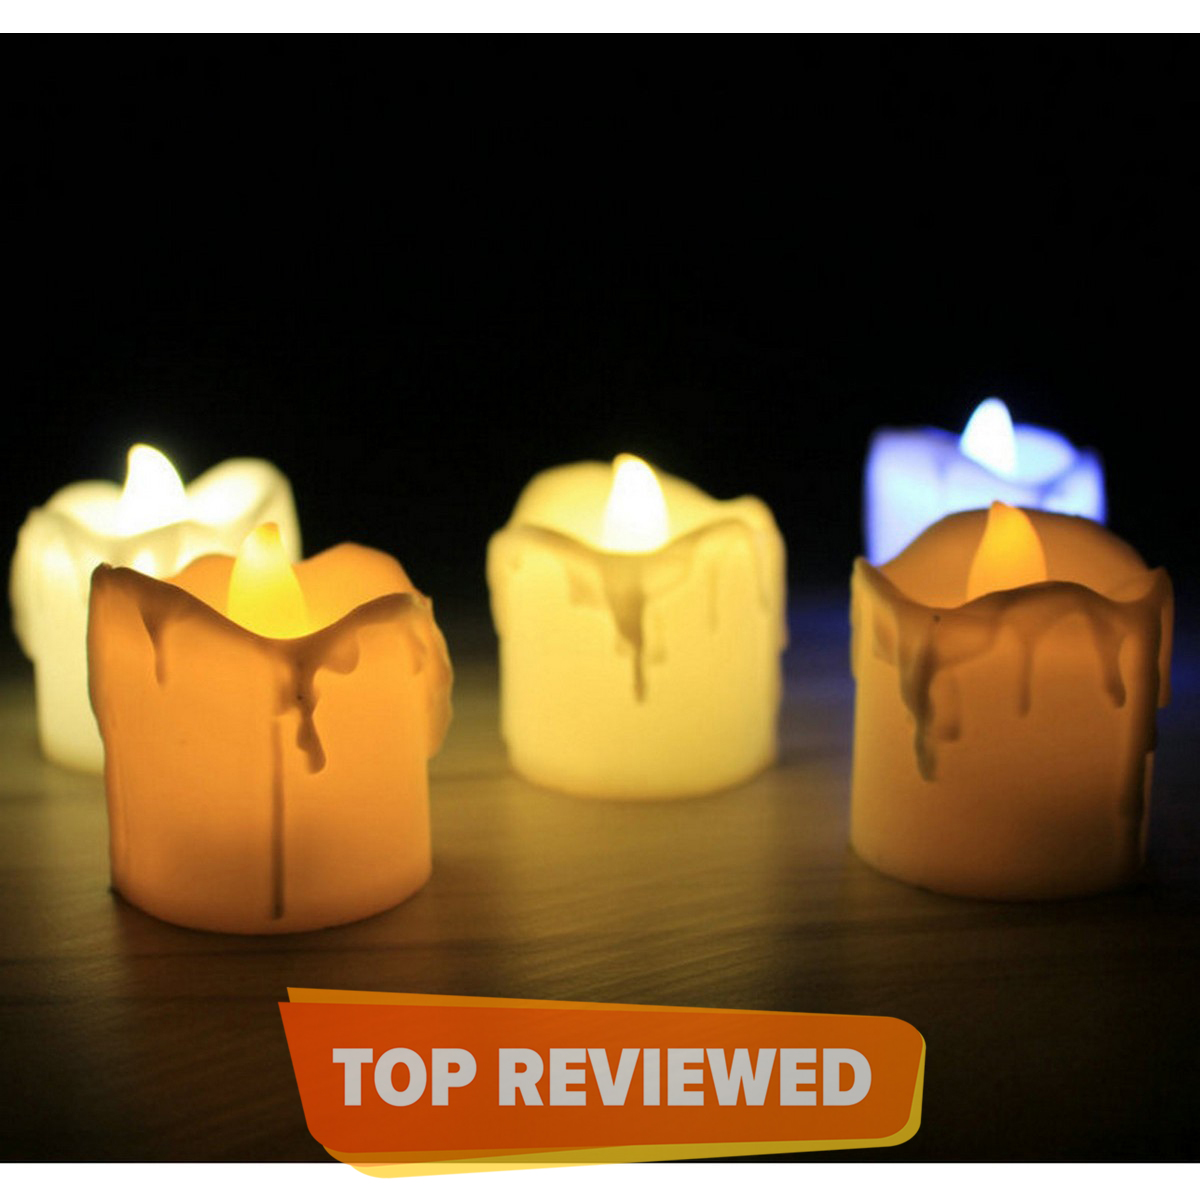 LED Tea Light flameless Candles LED Votive Candles Battery-Operating Flickering Candles Electric in Warm White and Wave